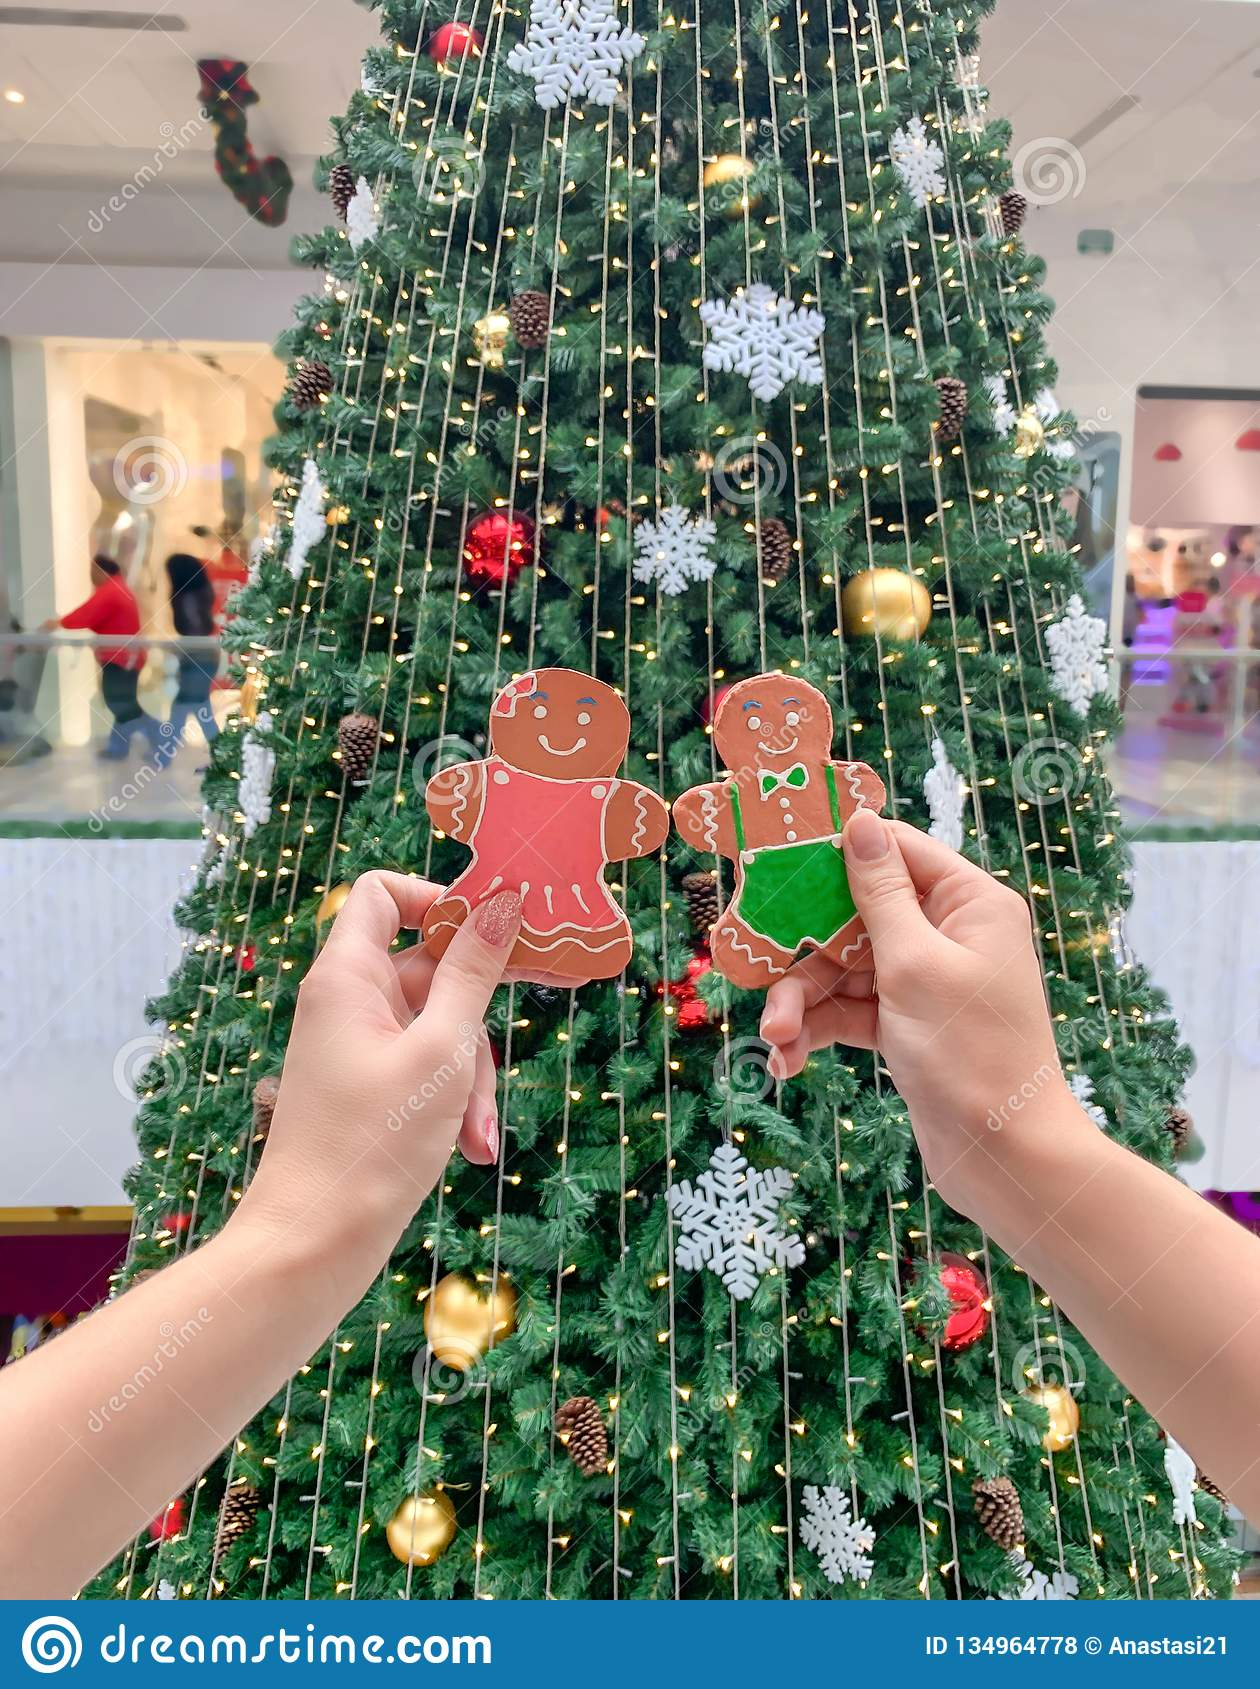 Female hands holding a gingerbread man gingerbread cookie on the background of the Christmas tree